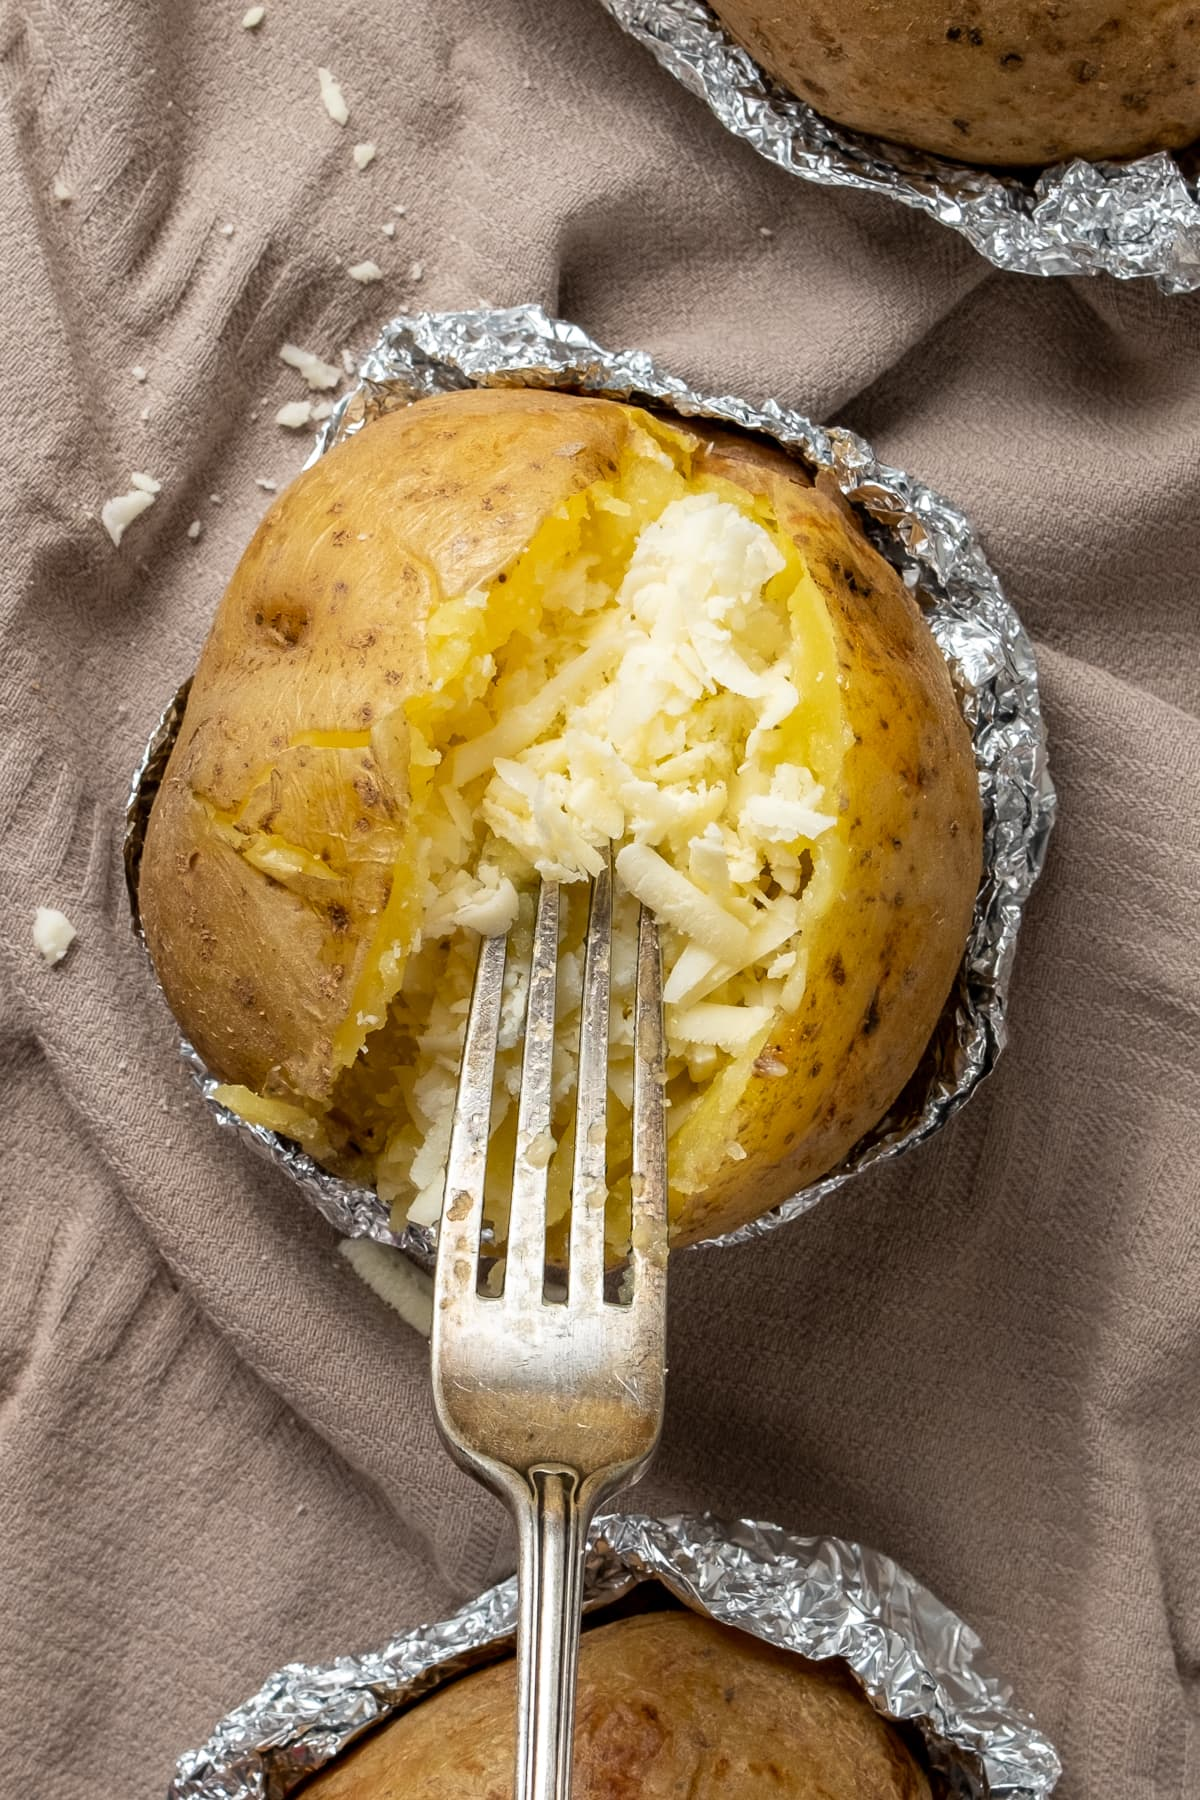 Adding cheese into a baked potato and a fork inside it.